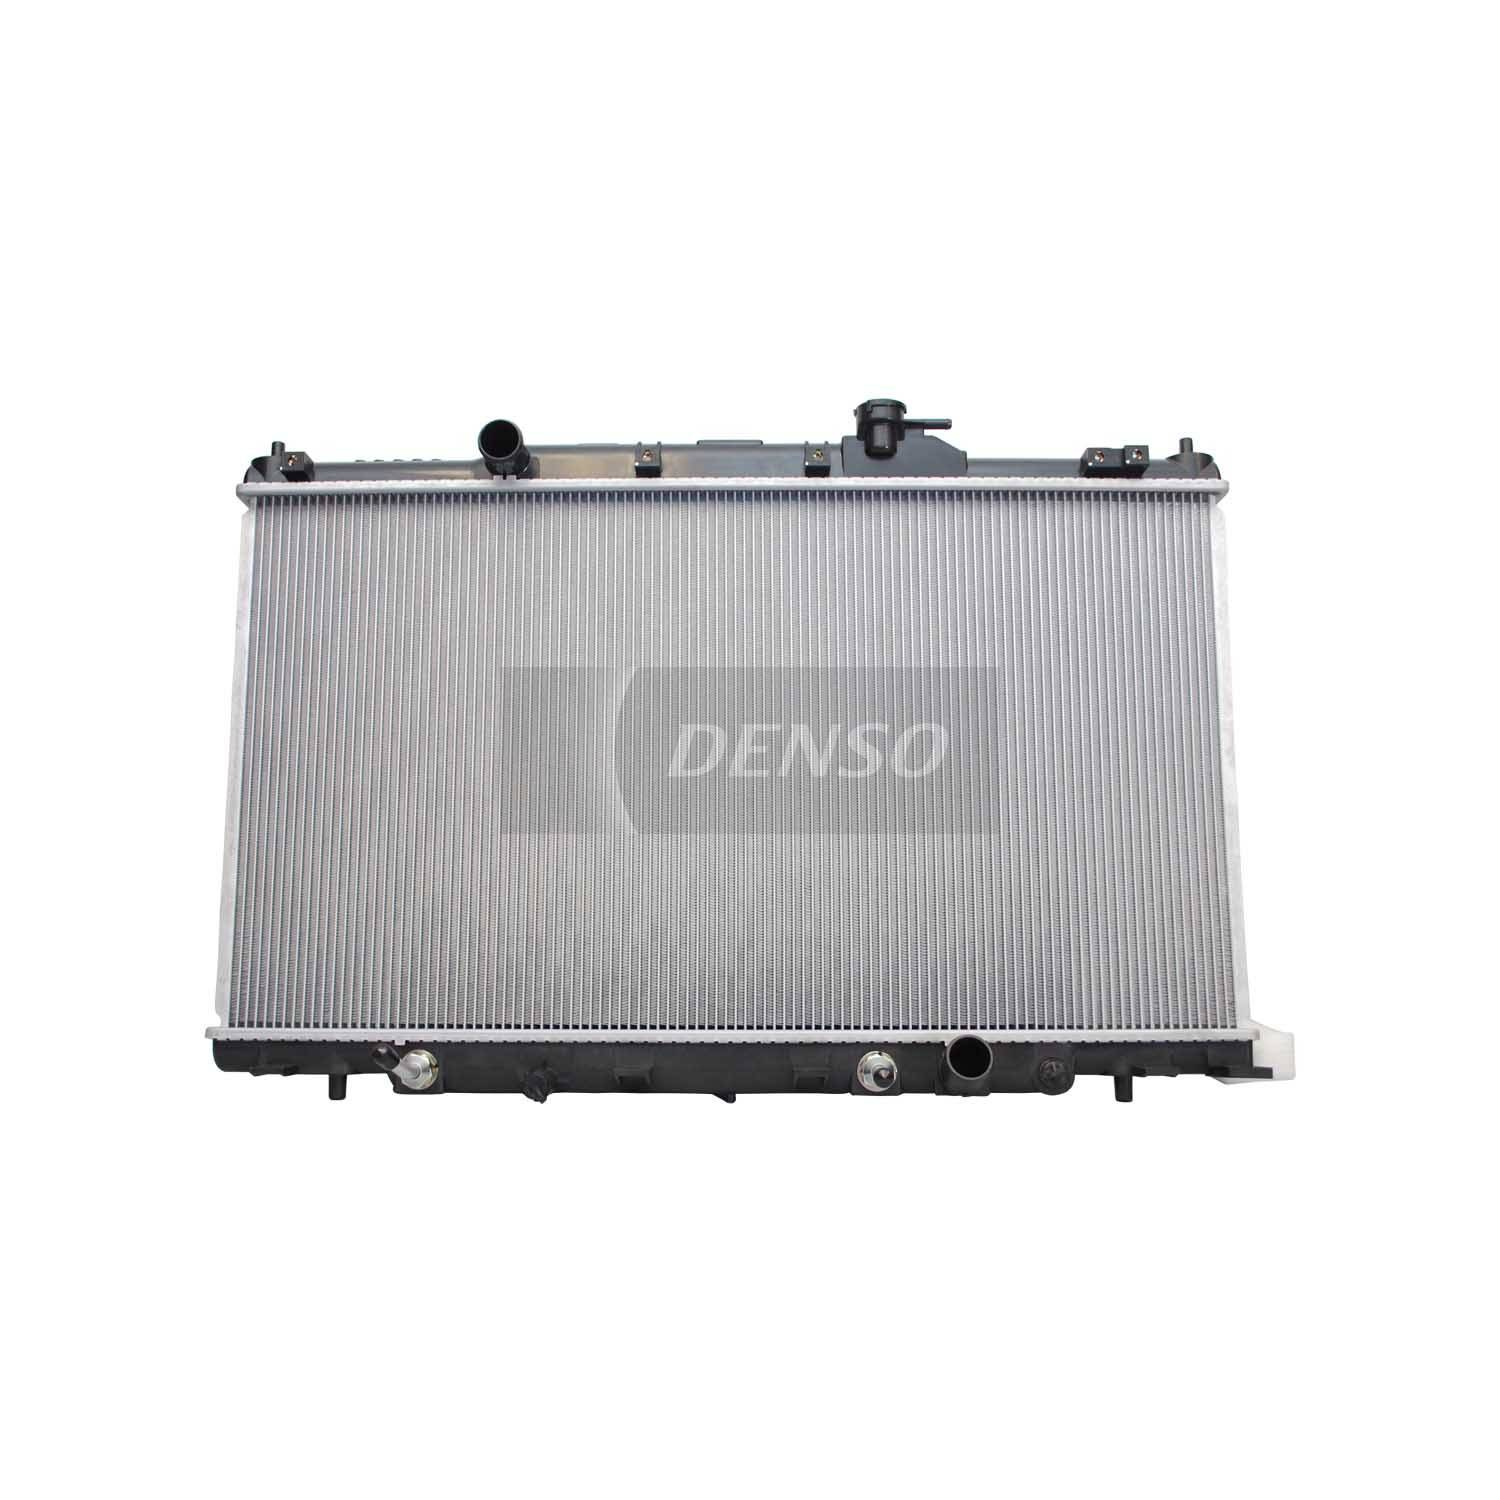 2010 Honda Element Radiator